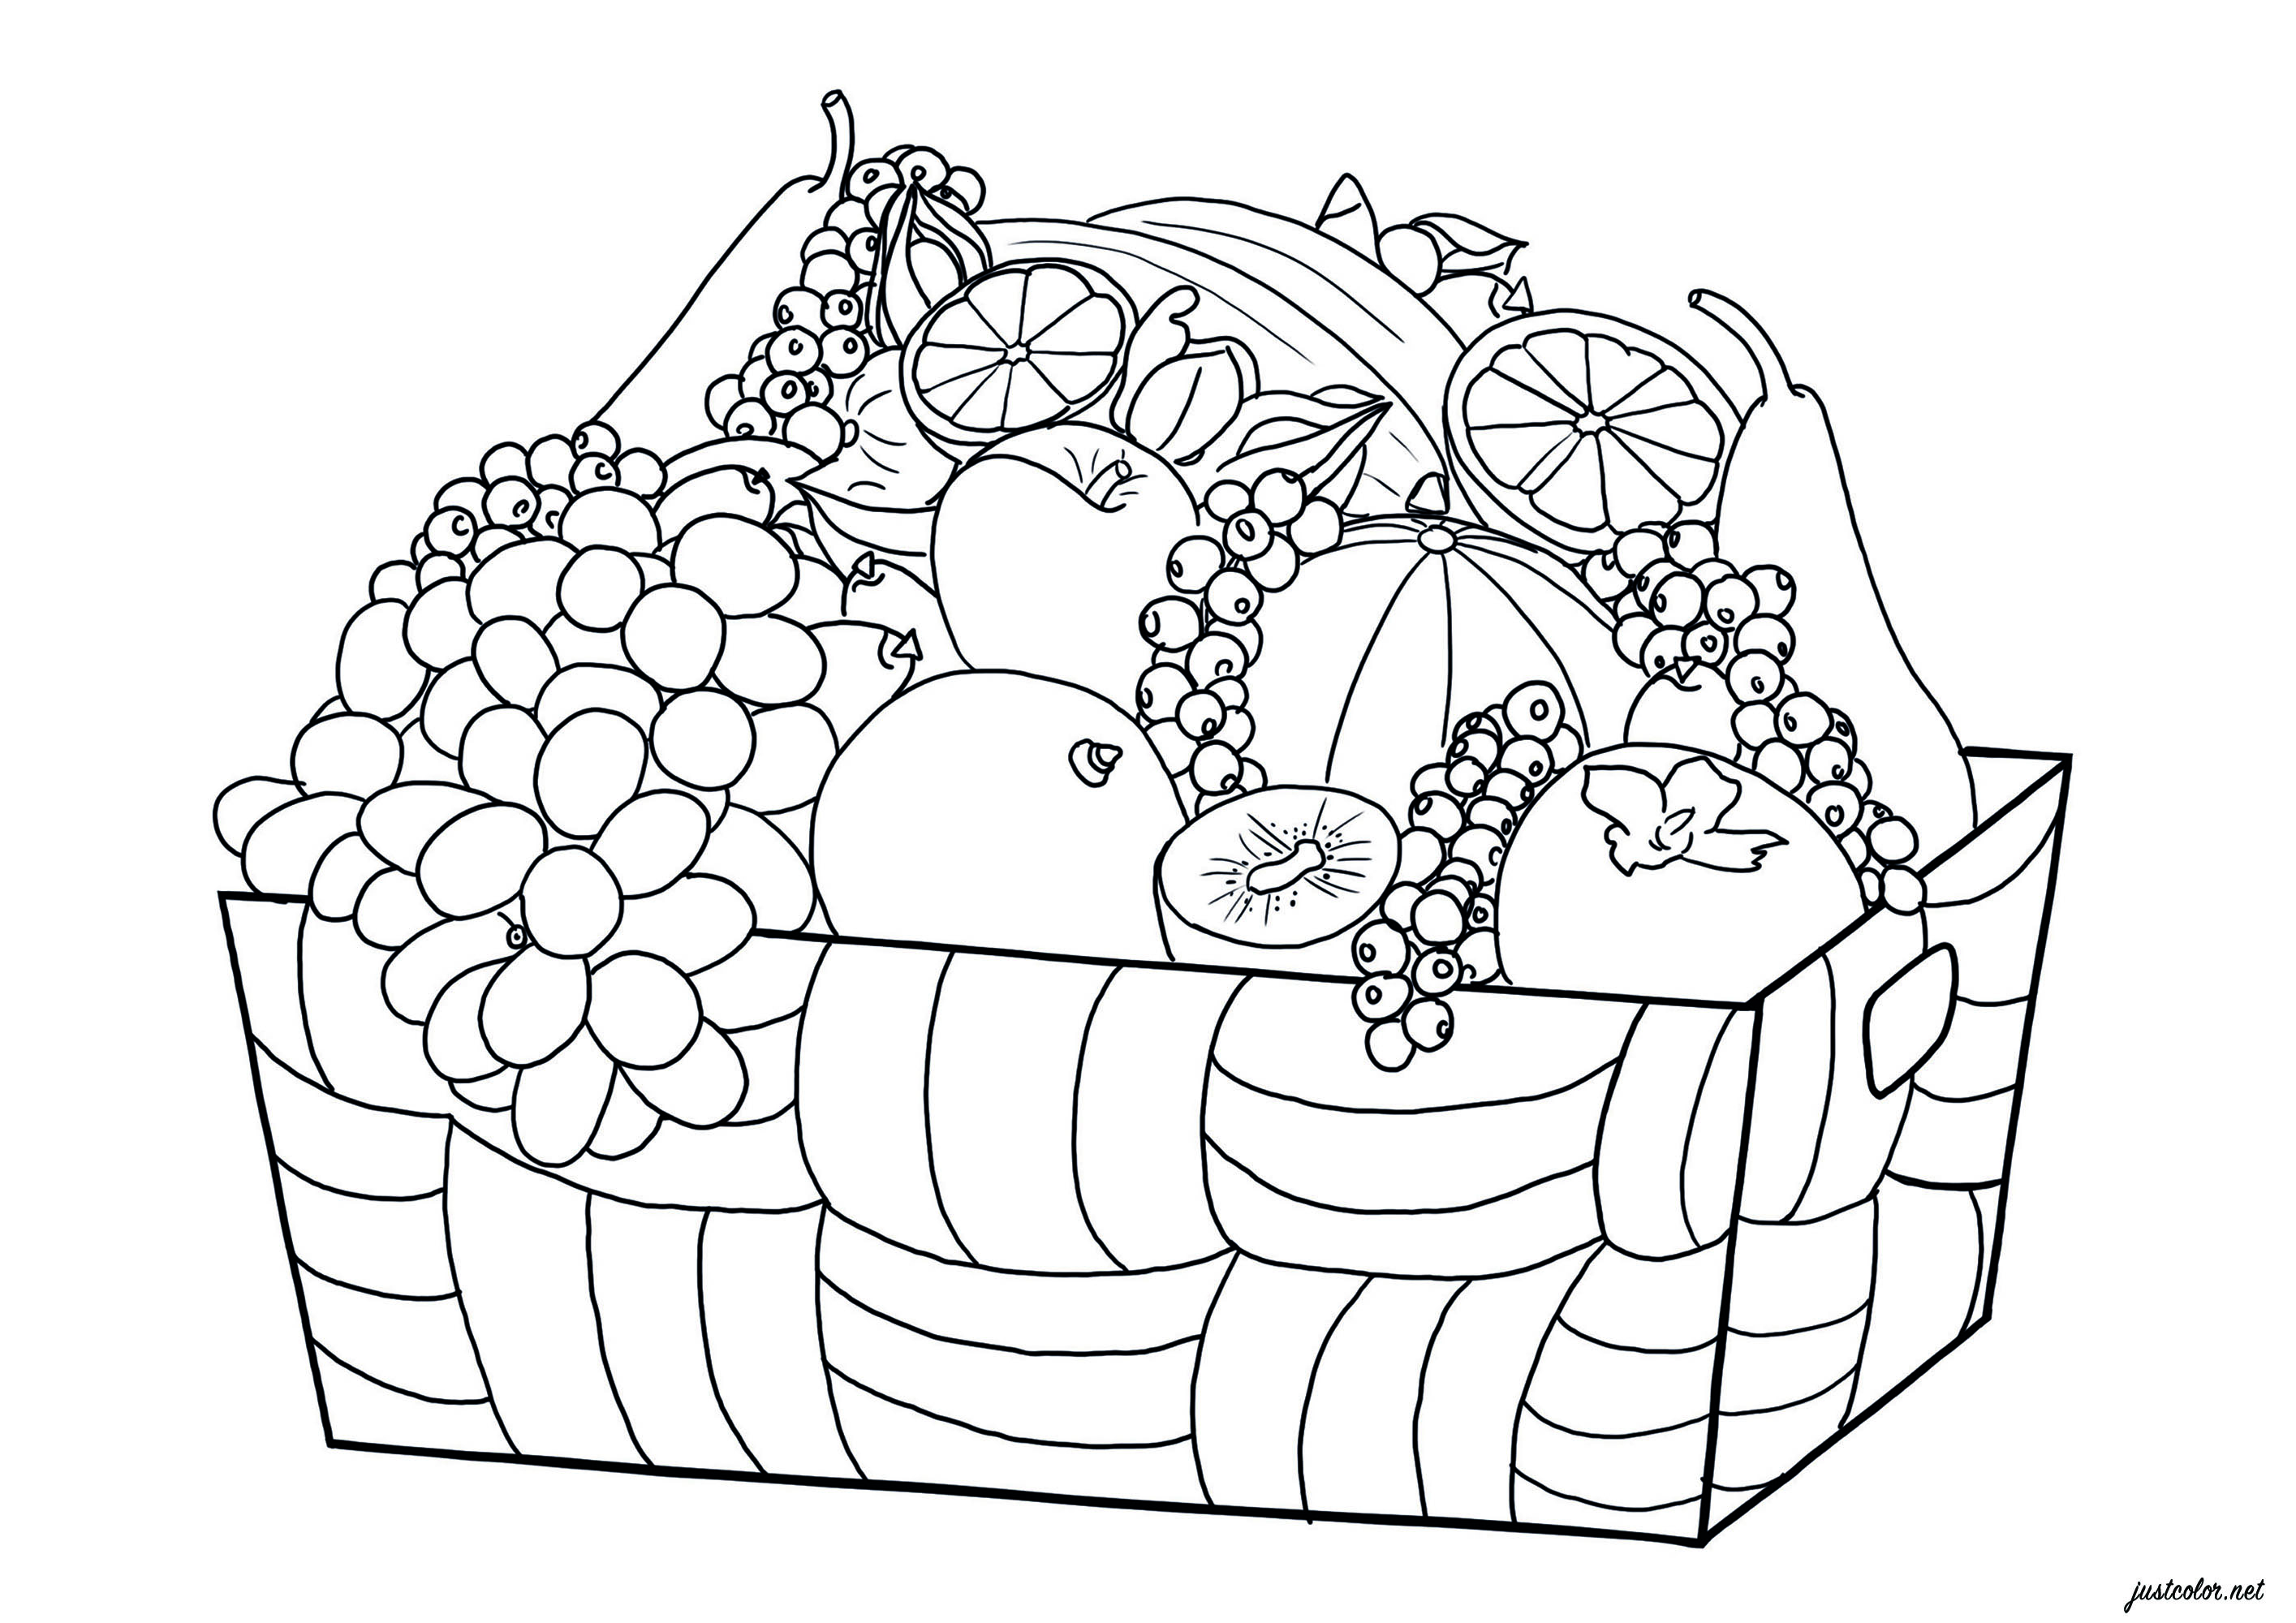 Color all these fruits !